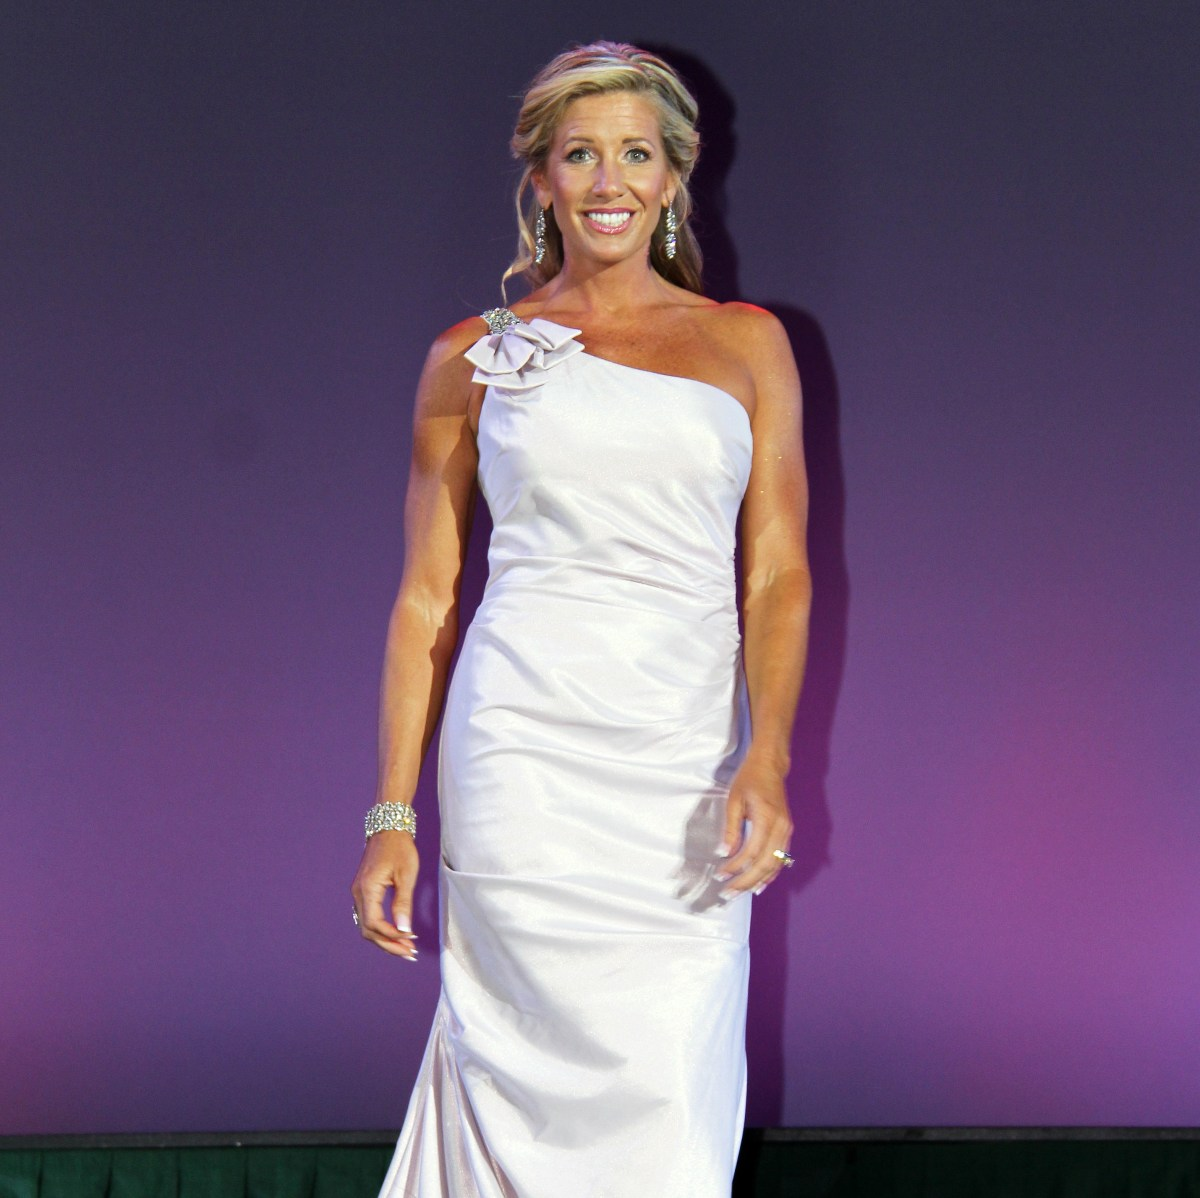 Mrs. Florida United States: Shock, Awe and Awesome